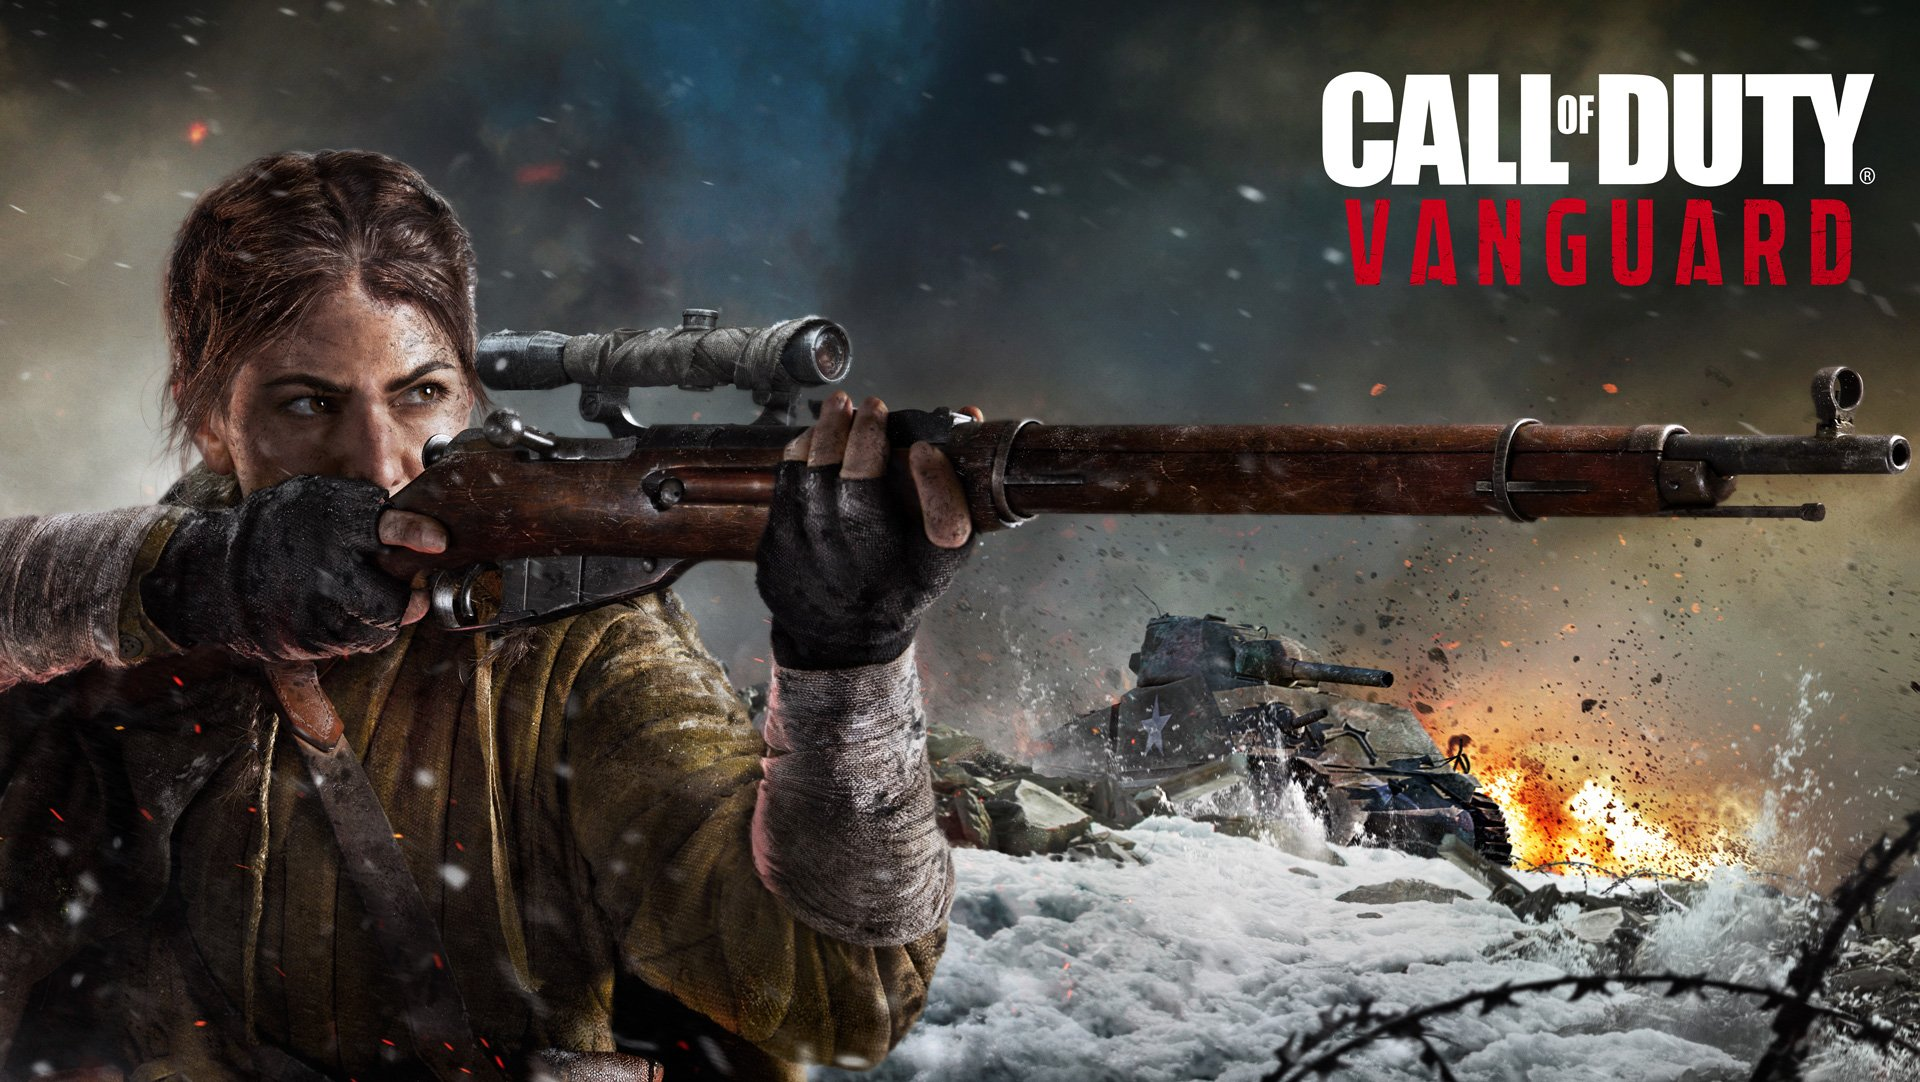 How to Play Call of Duty: Vanguard Open Beta on Xbox - Core Xbox